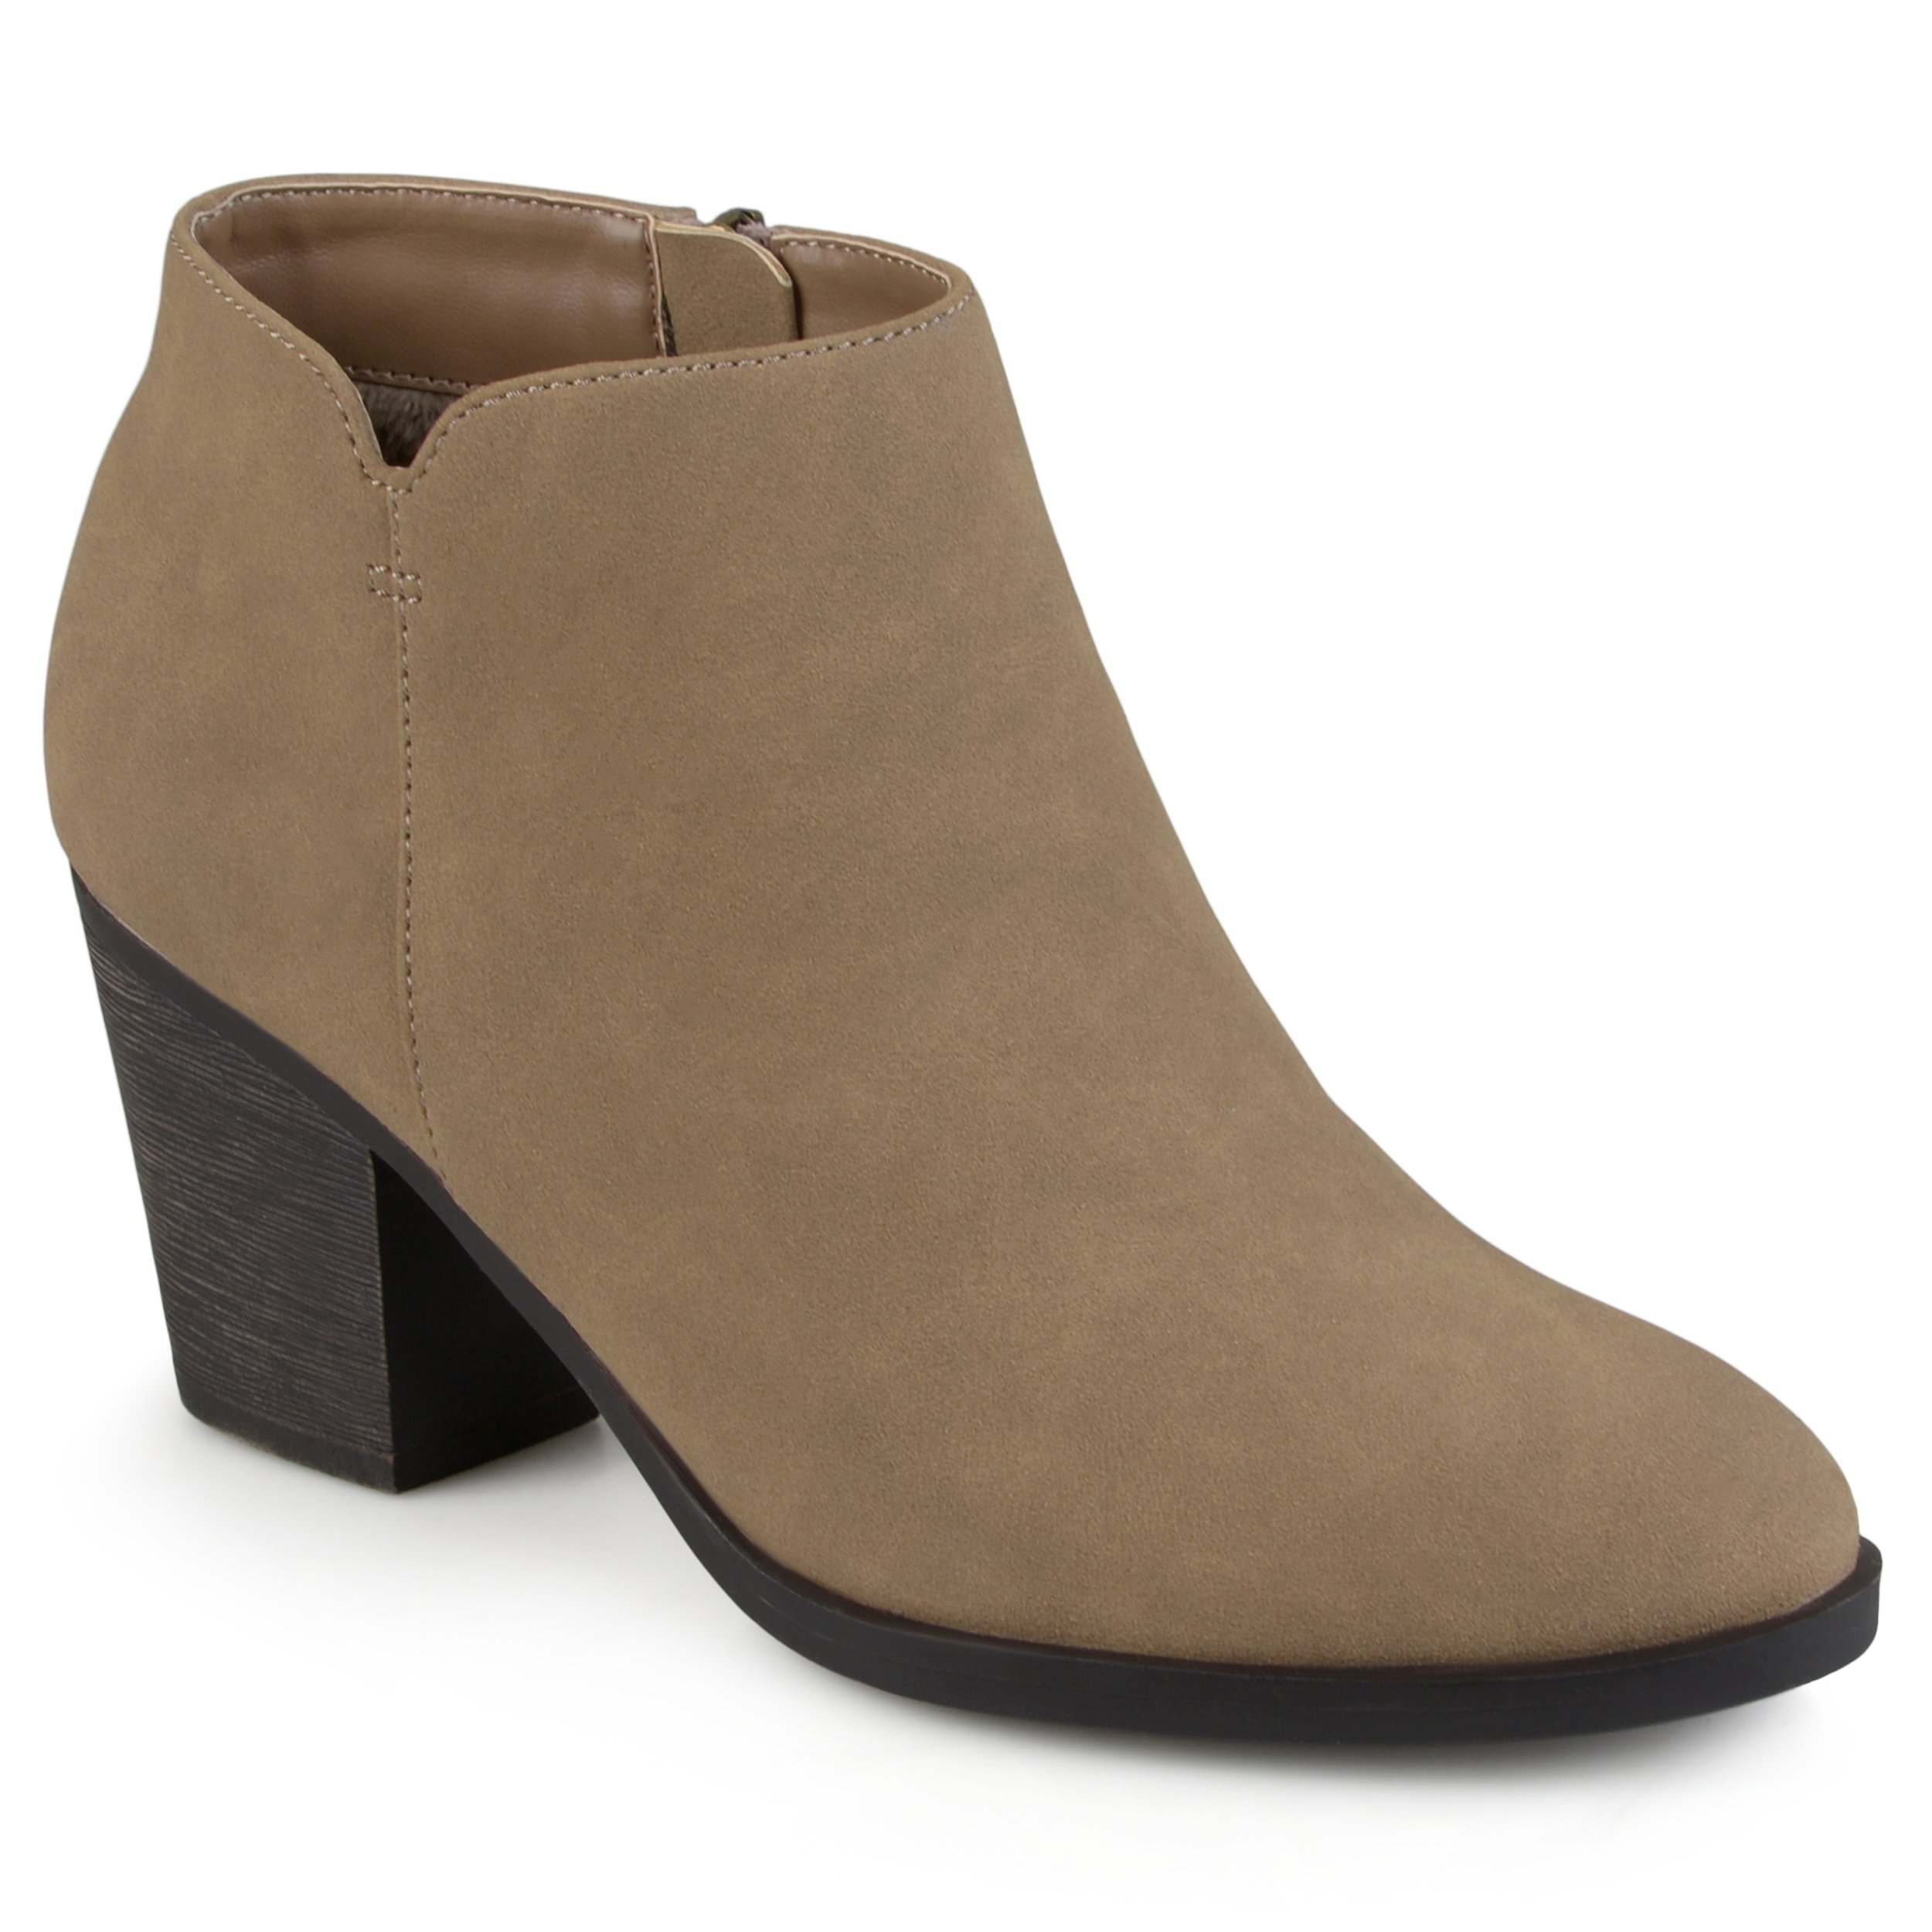 Journee Collection Womens High Heeled Round Toe Chunky Heel Ankle Booties